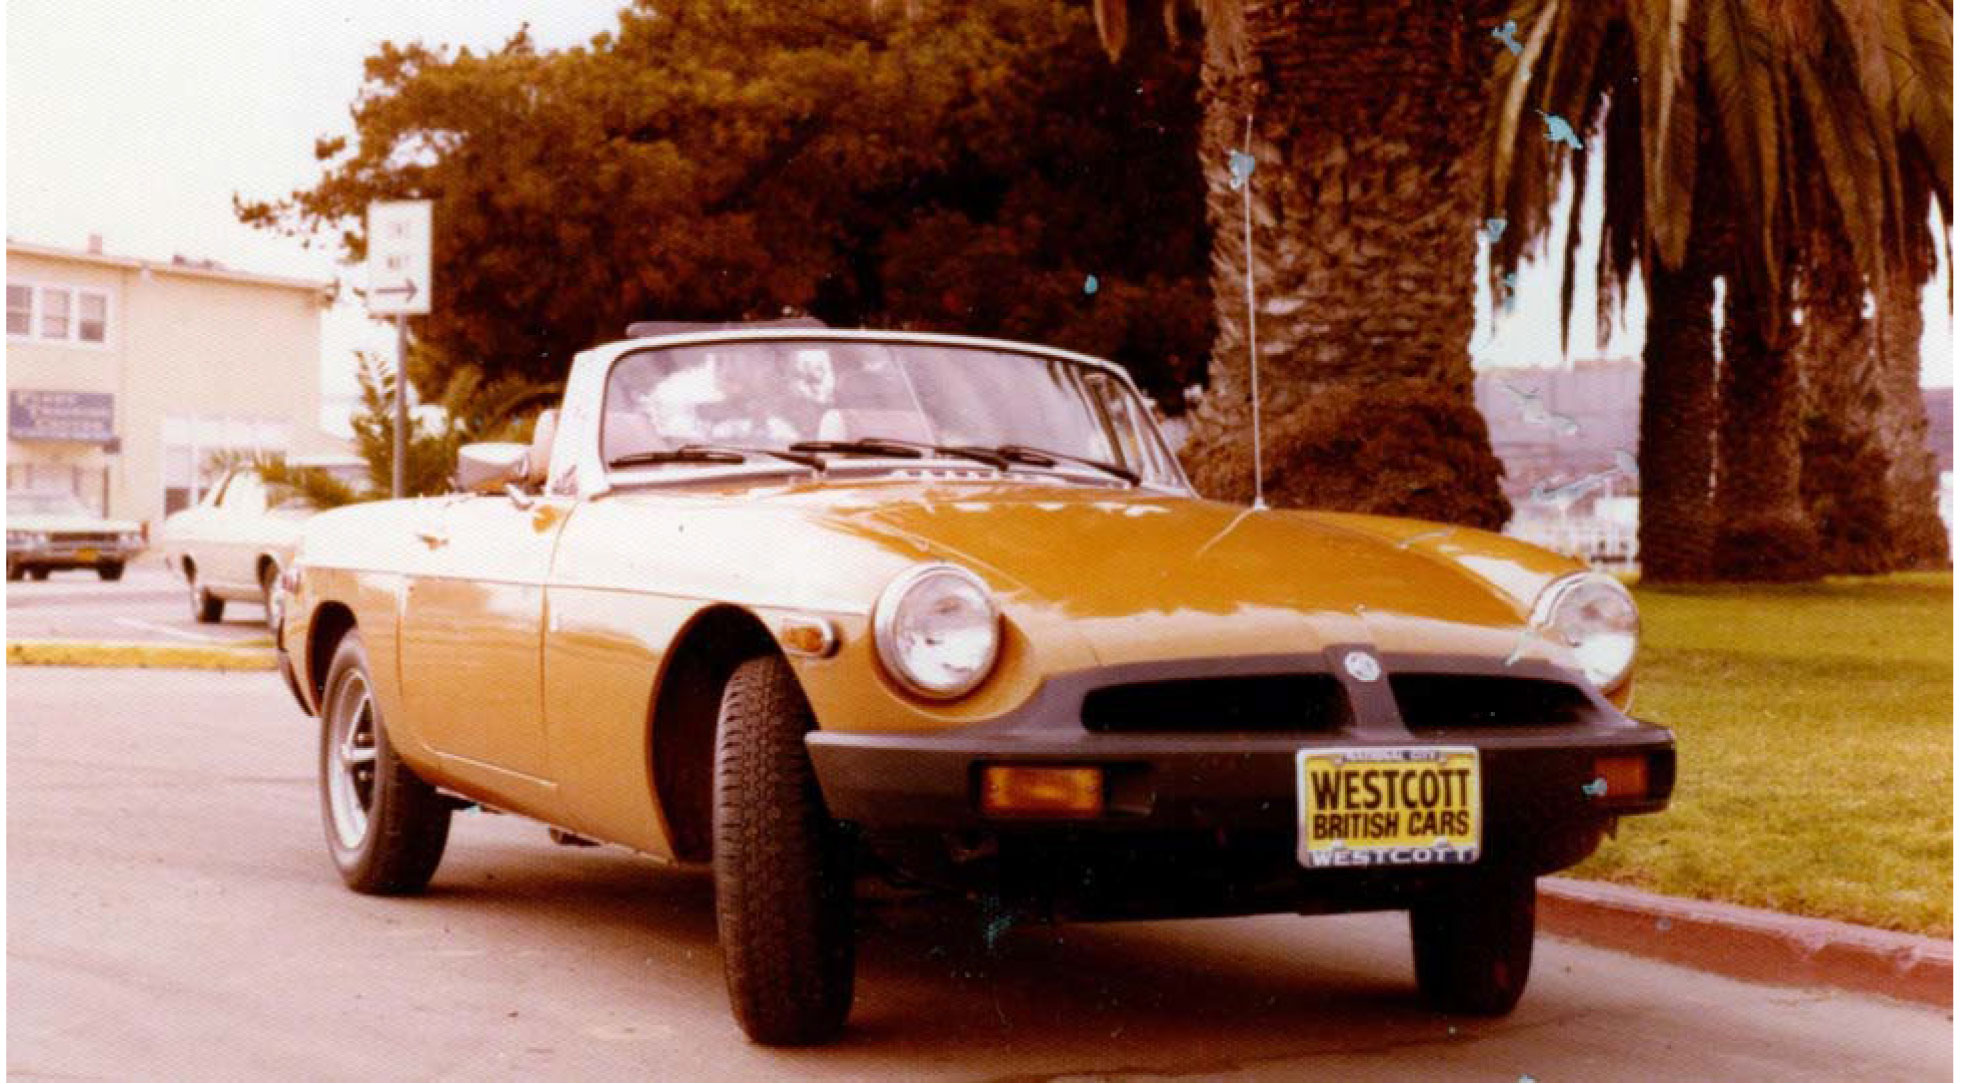 My-MGB-story-6-copy.jpg